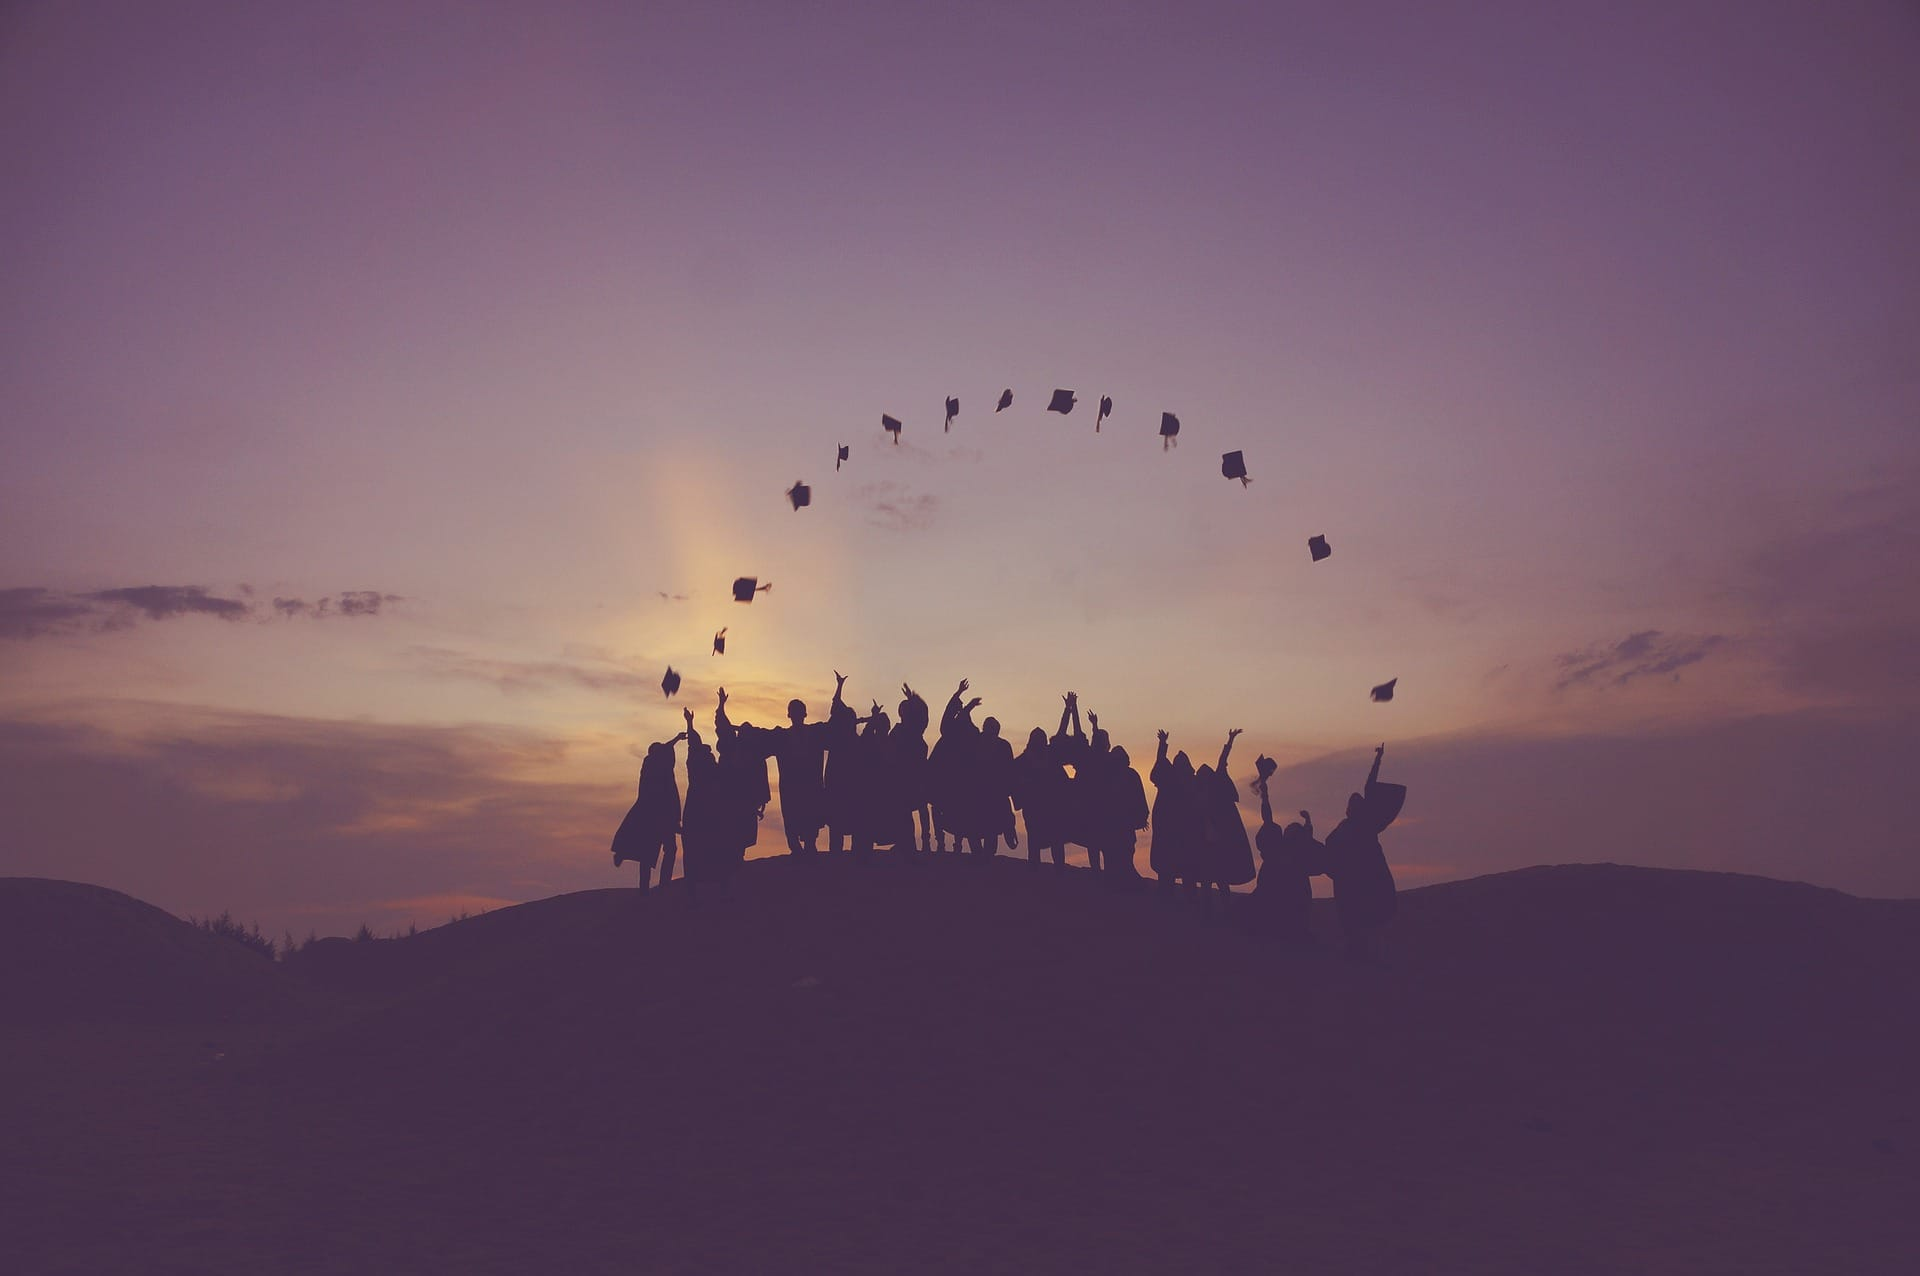 Graduates tossing hats into the air